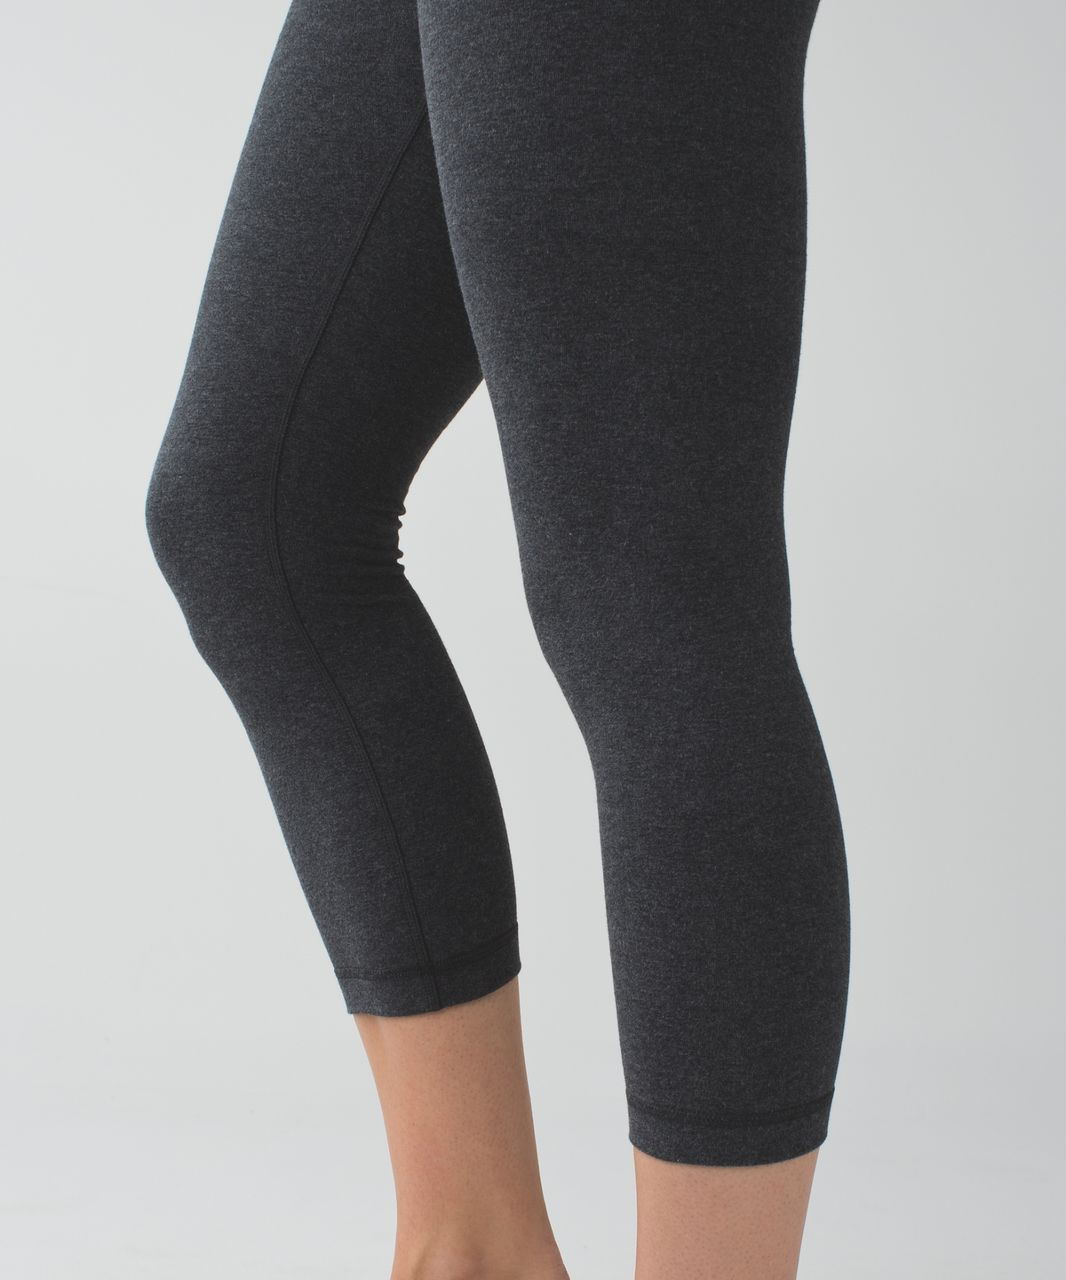 Lululemon Wunder Under Crop III - Heathered Black